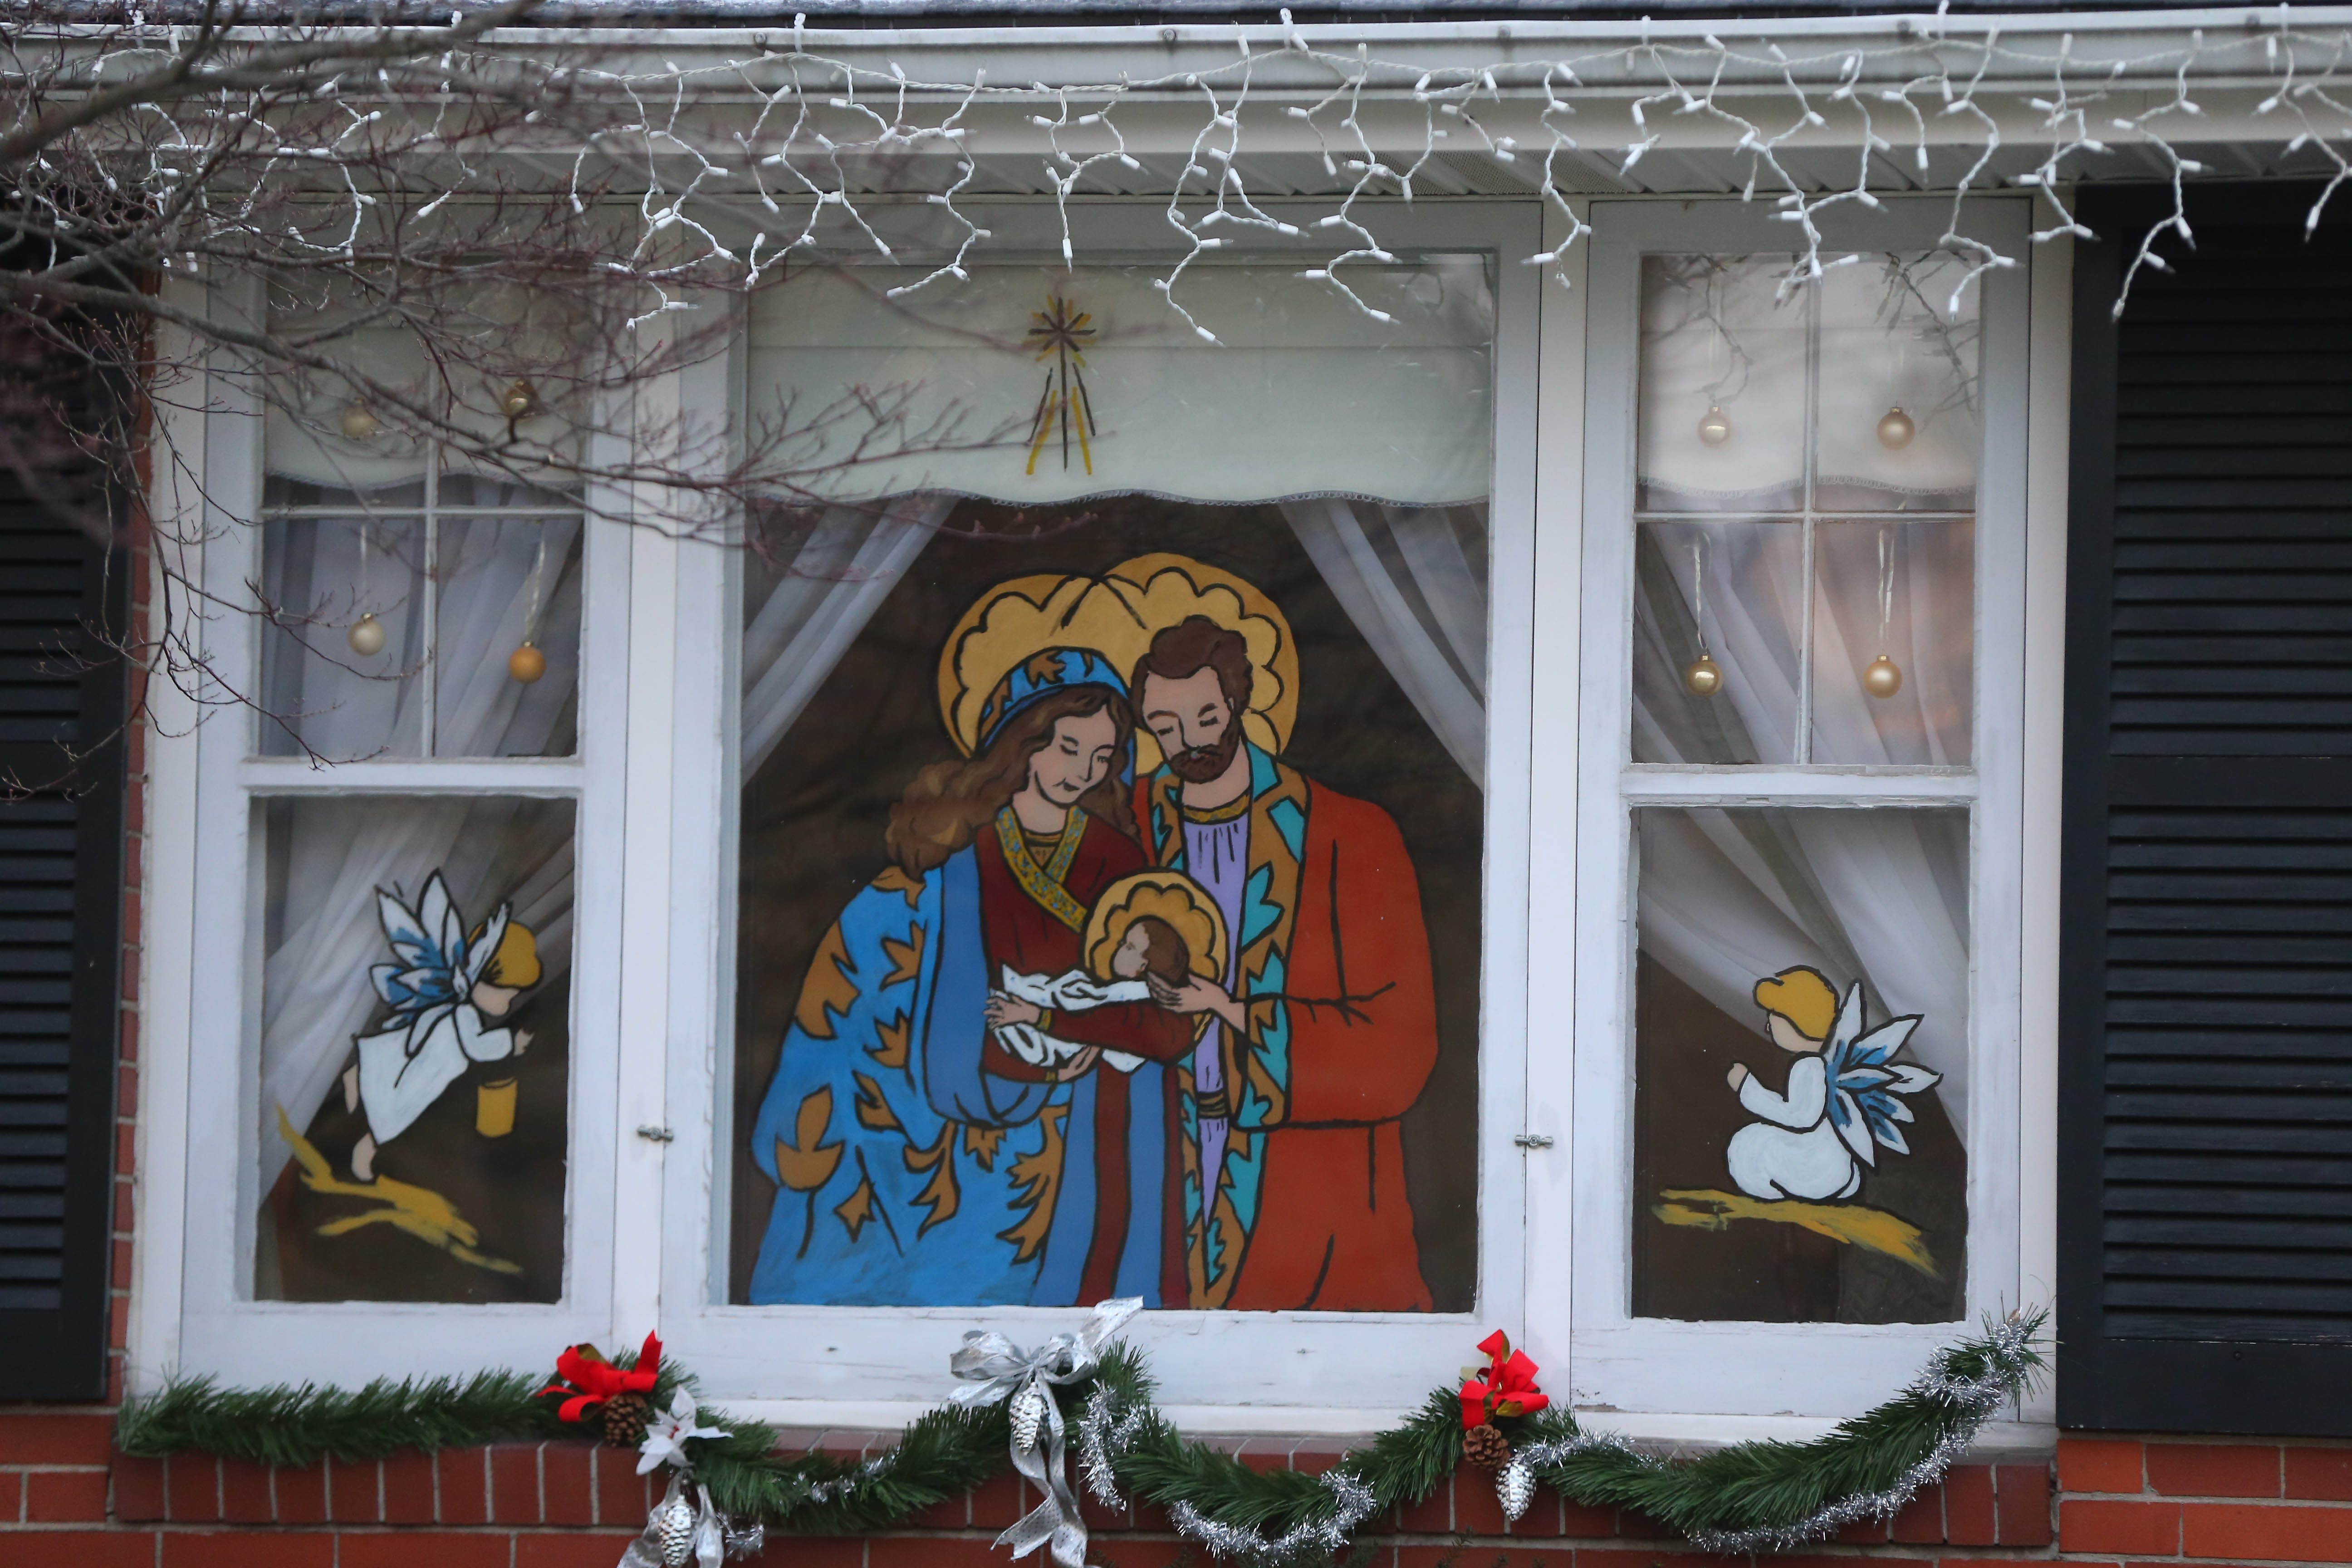 Carolyn Nosky painted this picture of the Holy Family on her front window to celebrate the holiday as she has every year since 1954.